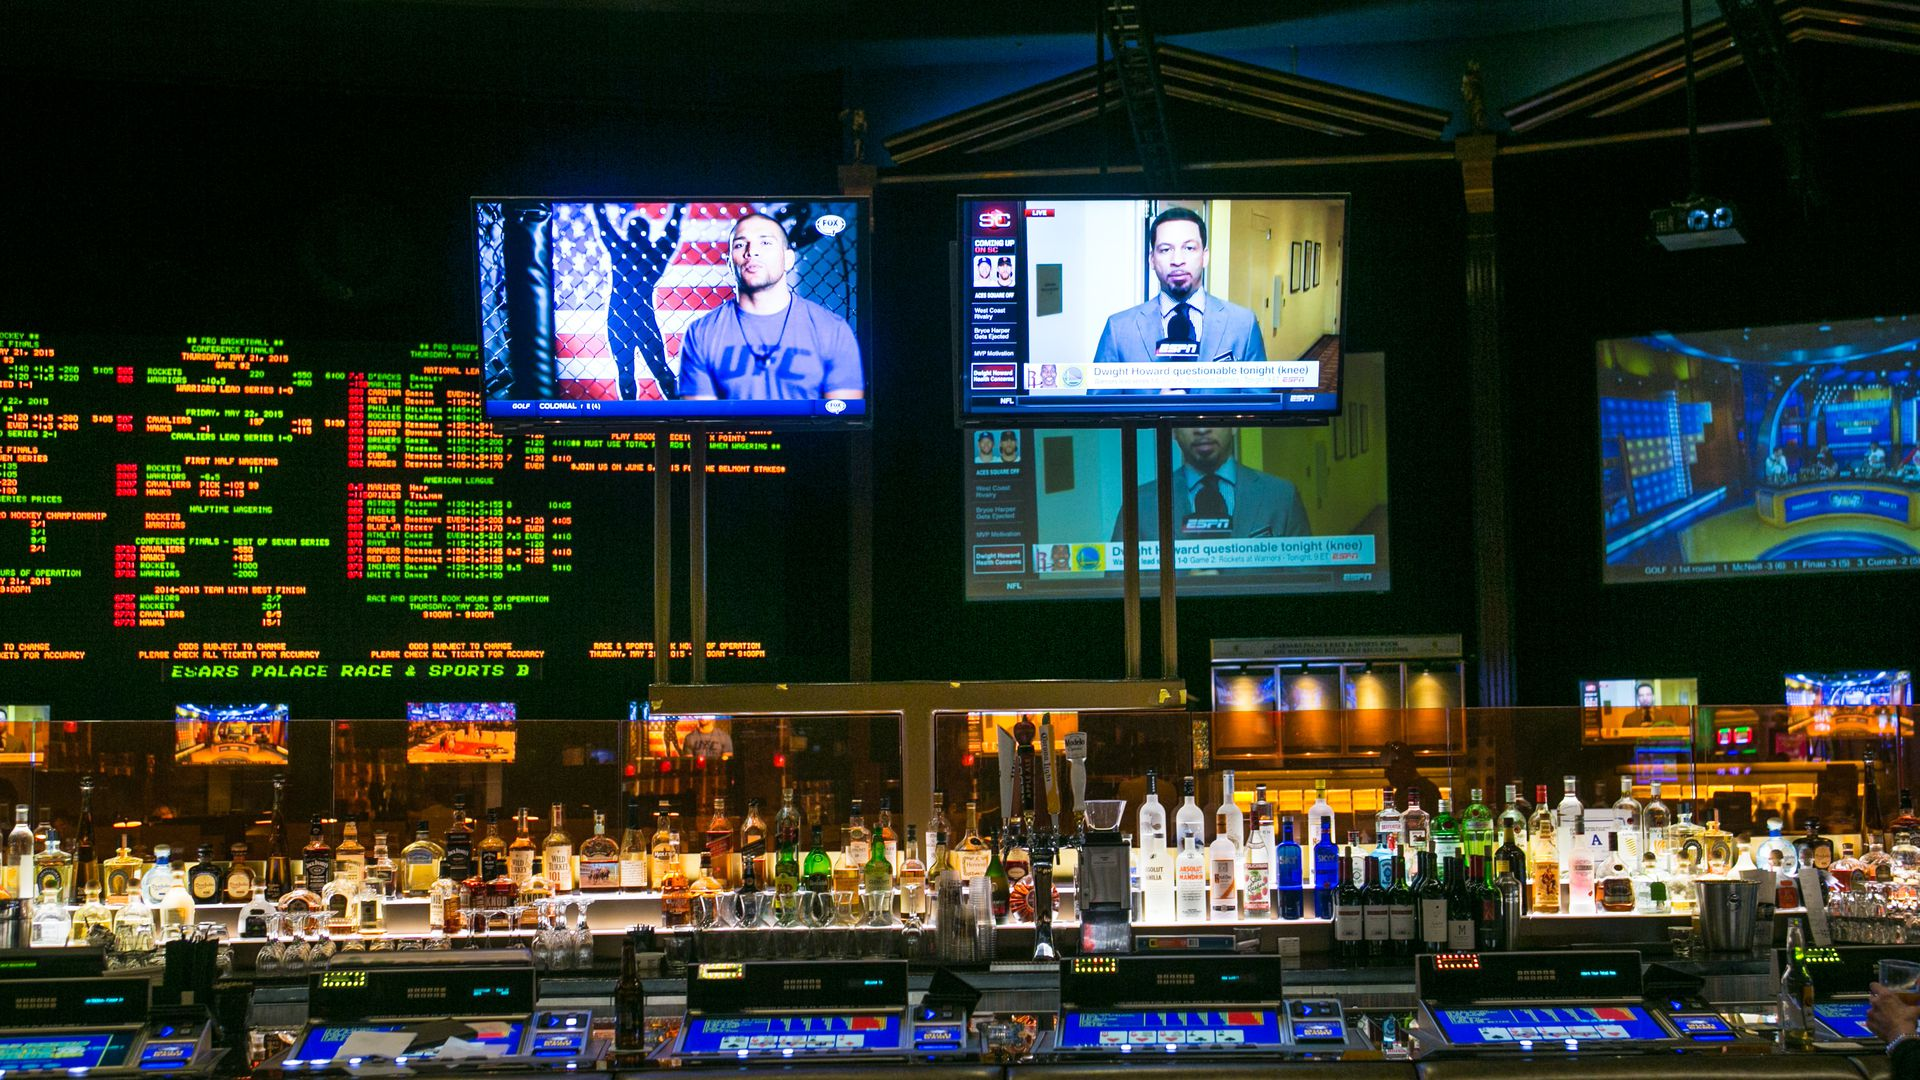 The U.S. Supreme Court ruling gives states the choice to allow sports wagering